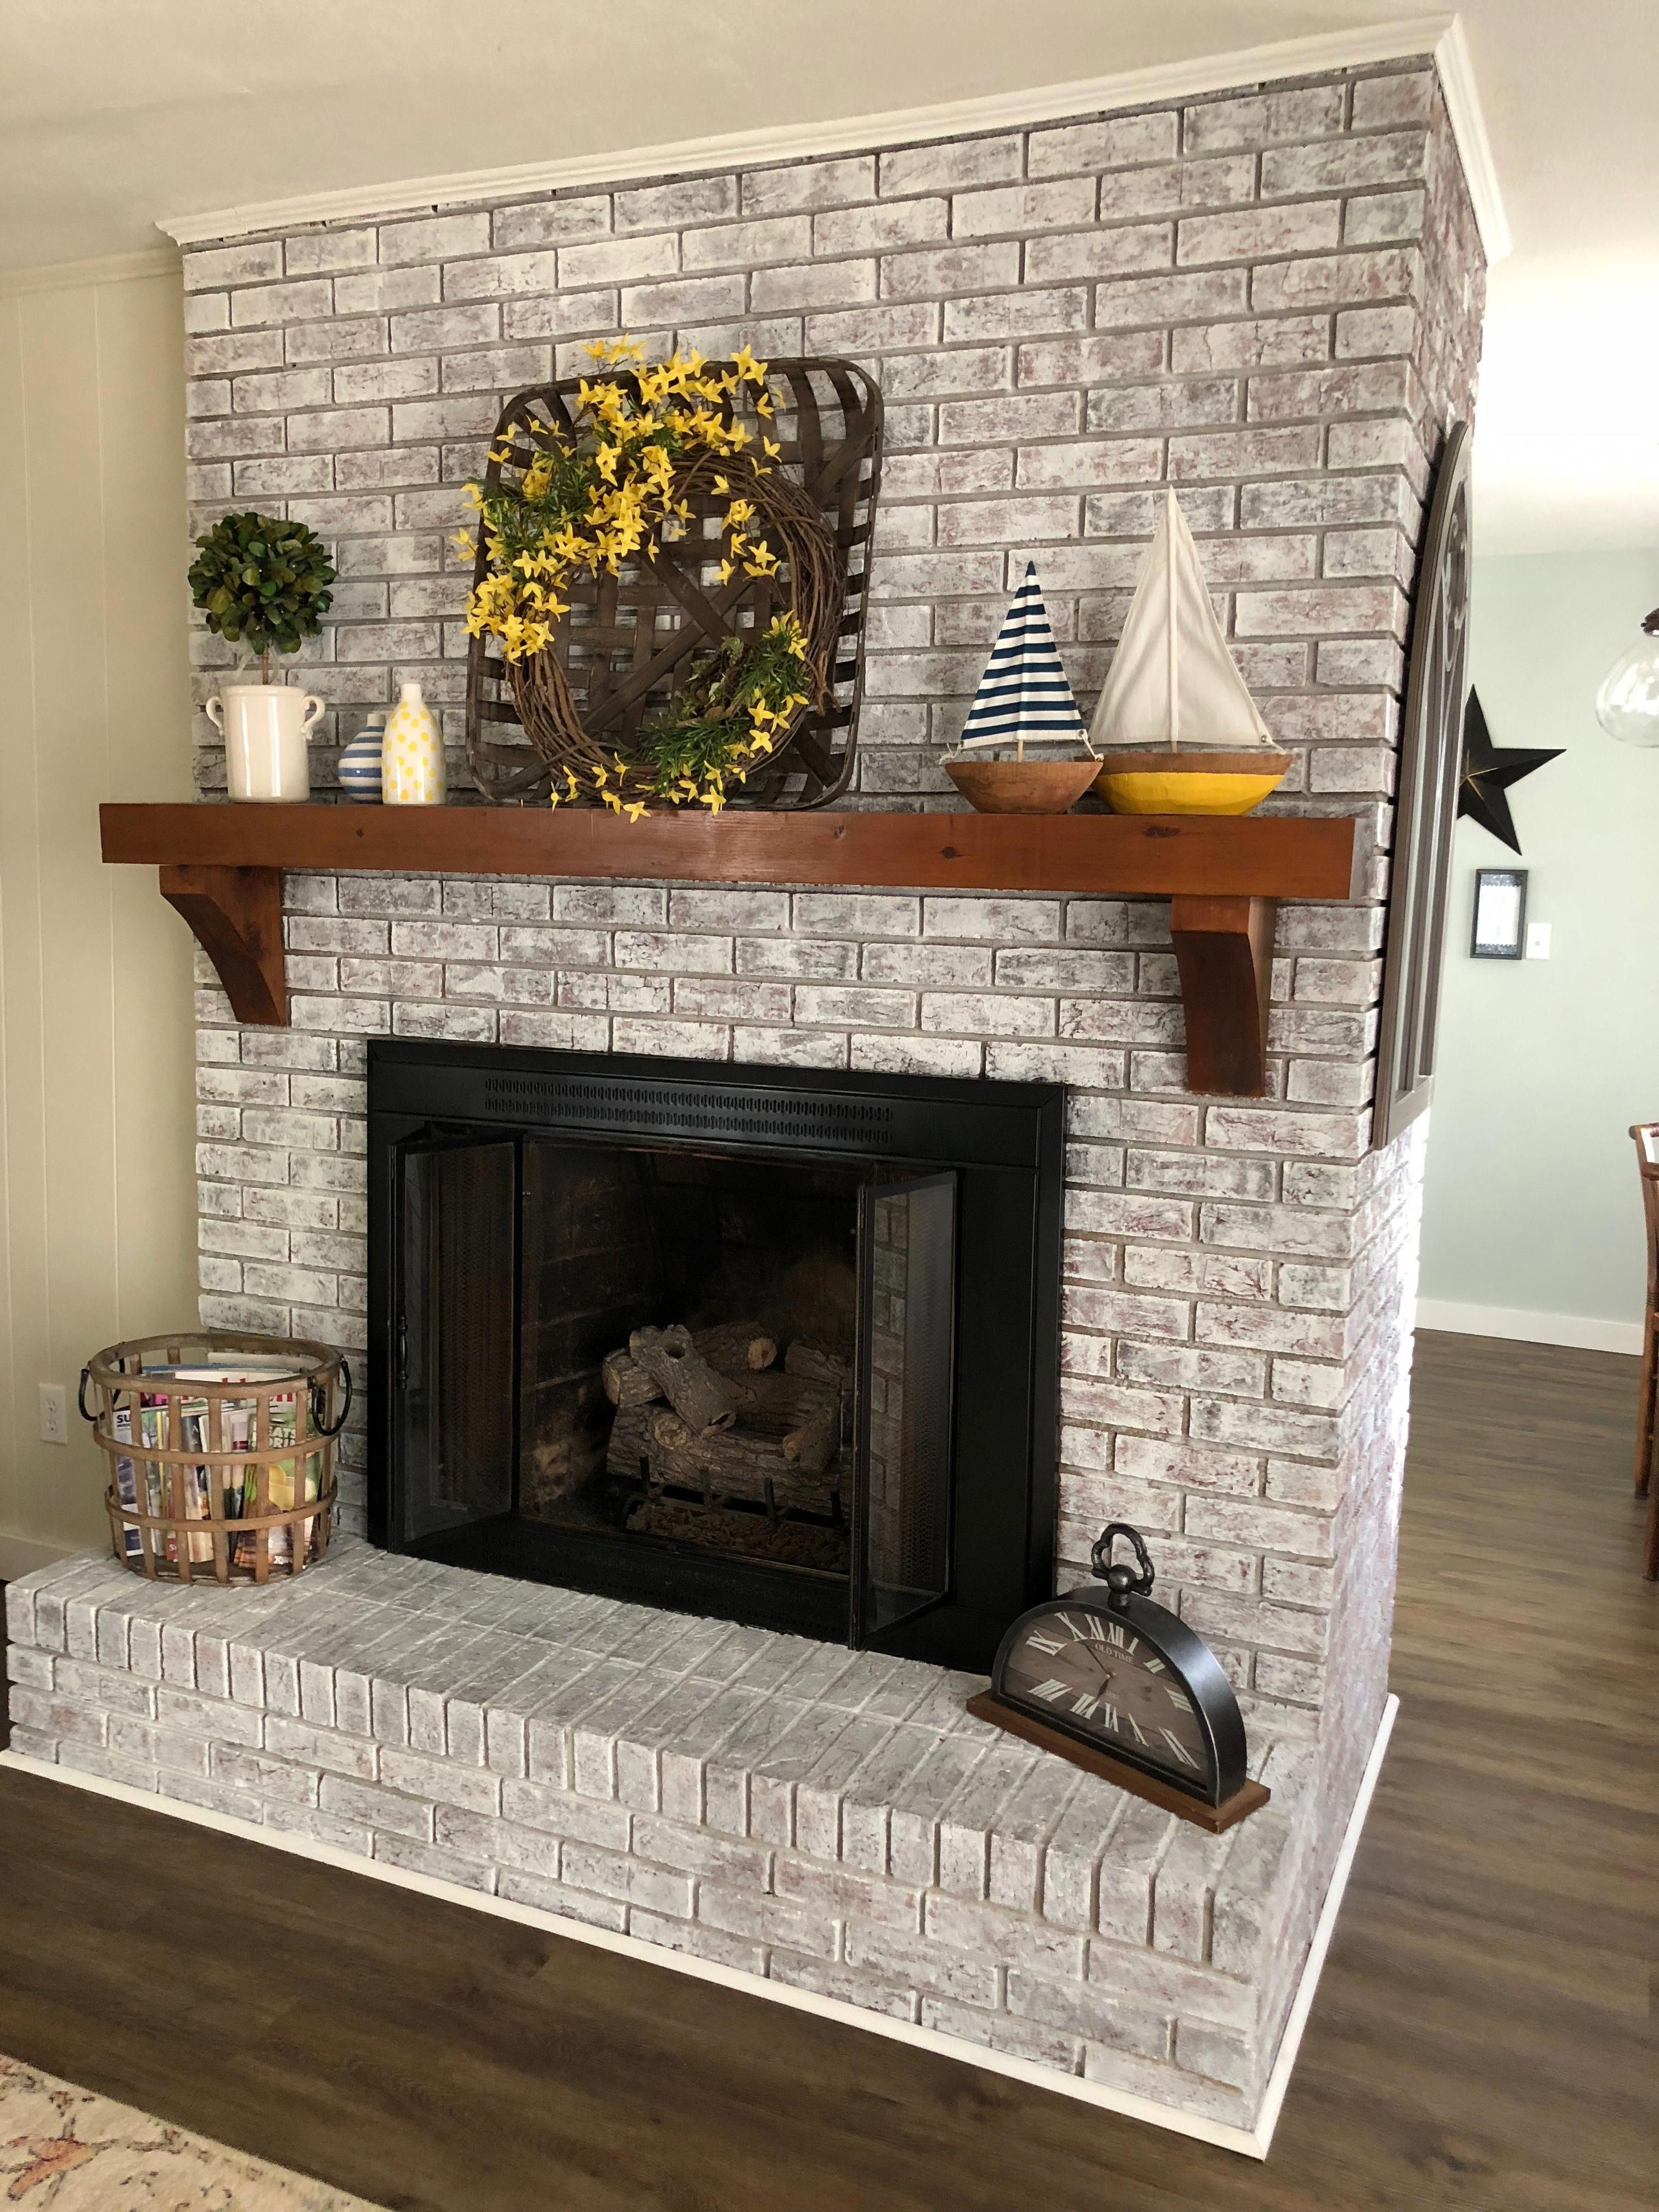 Fireplace Refacing Kits Elegant Painted Brick Fireplace Sw Pure White Over Dark Red Brick